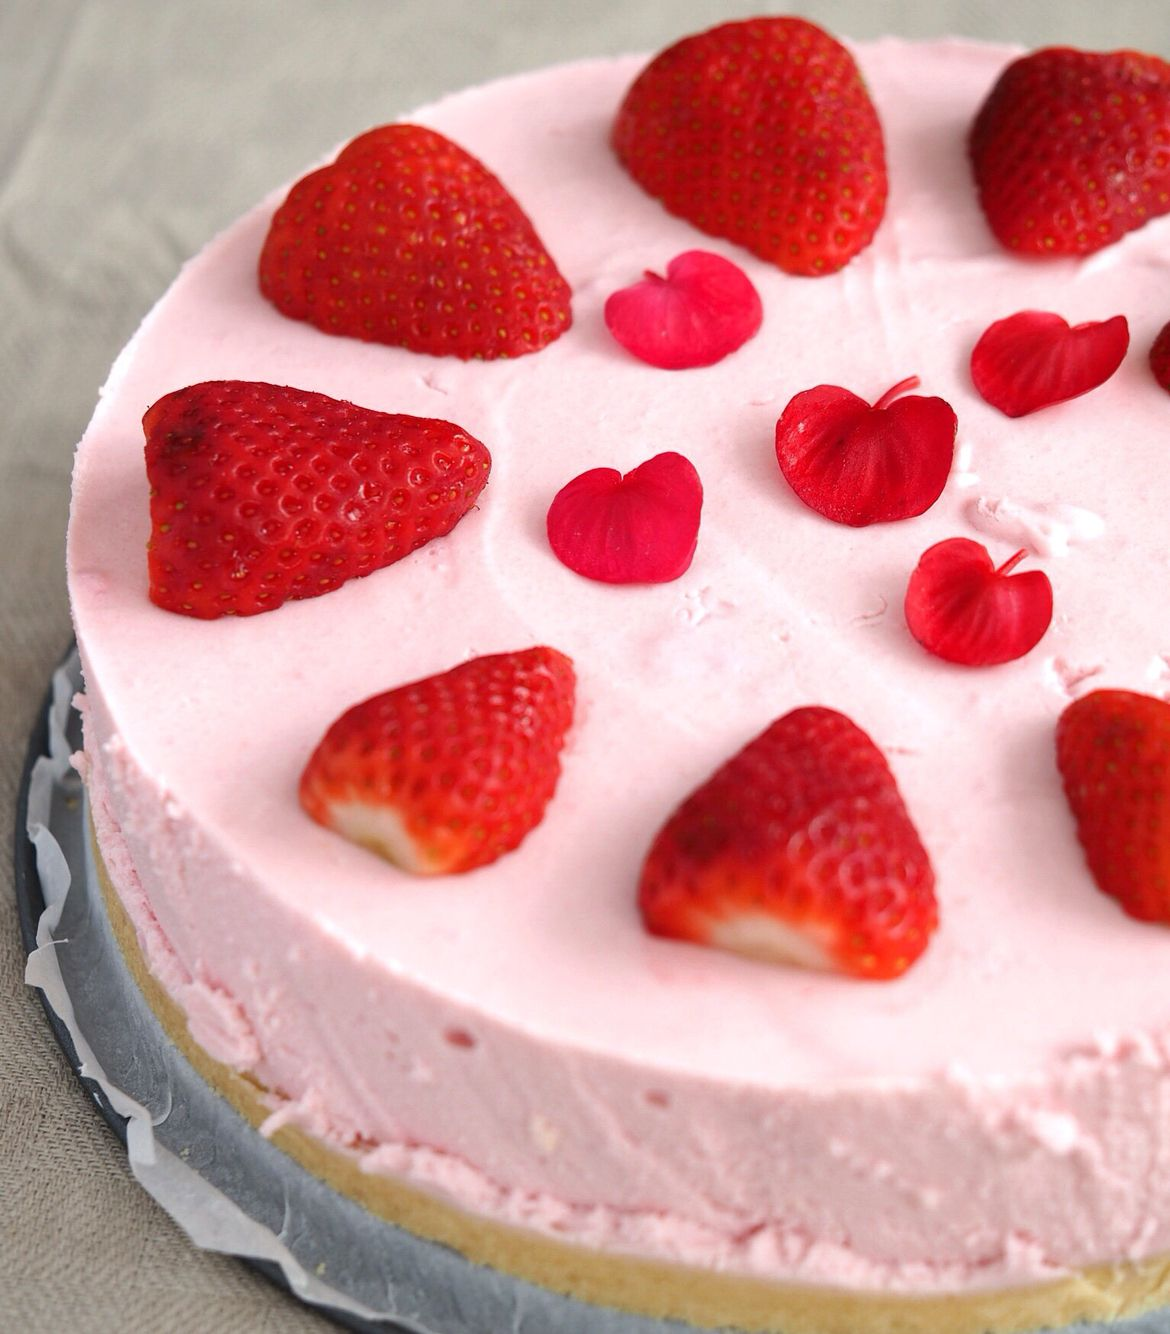 Strawberry Cheesecake  ~ Food Photography By Boel Of Photos